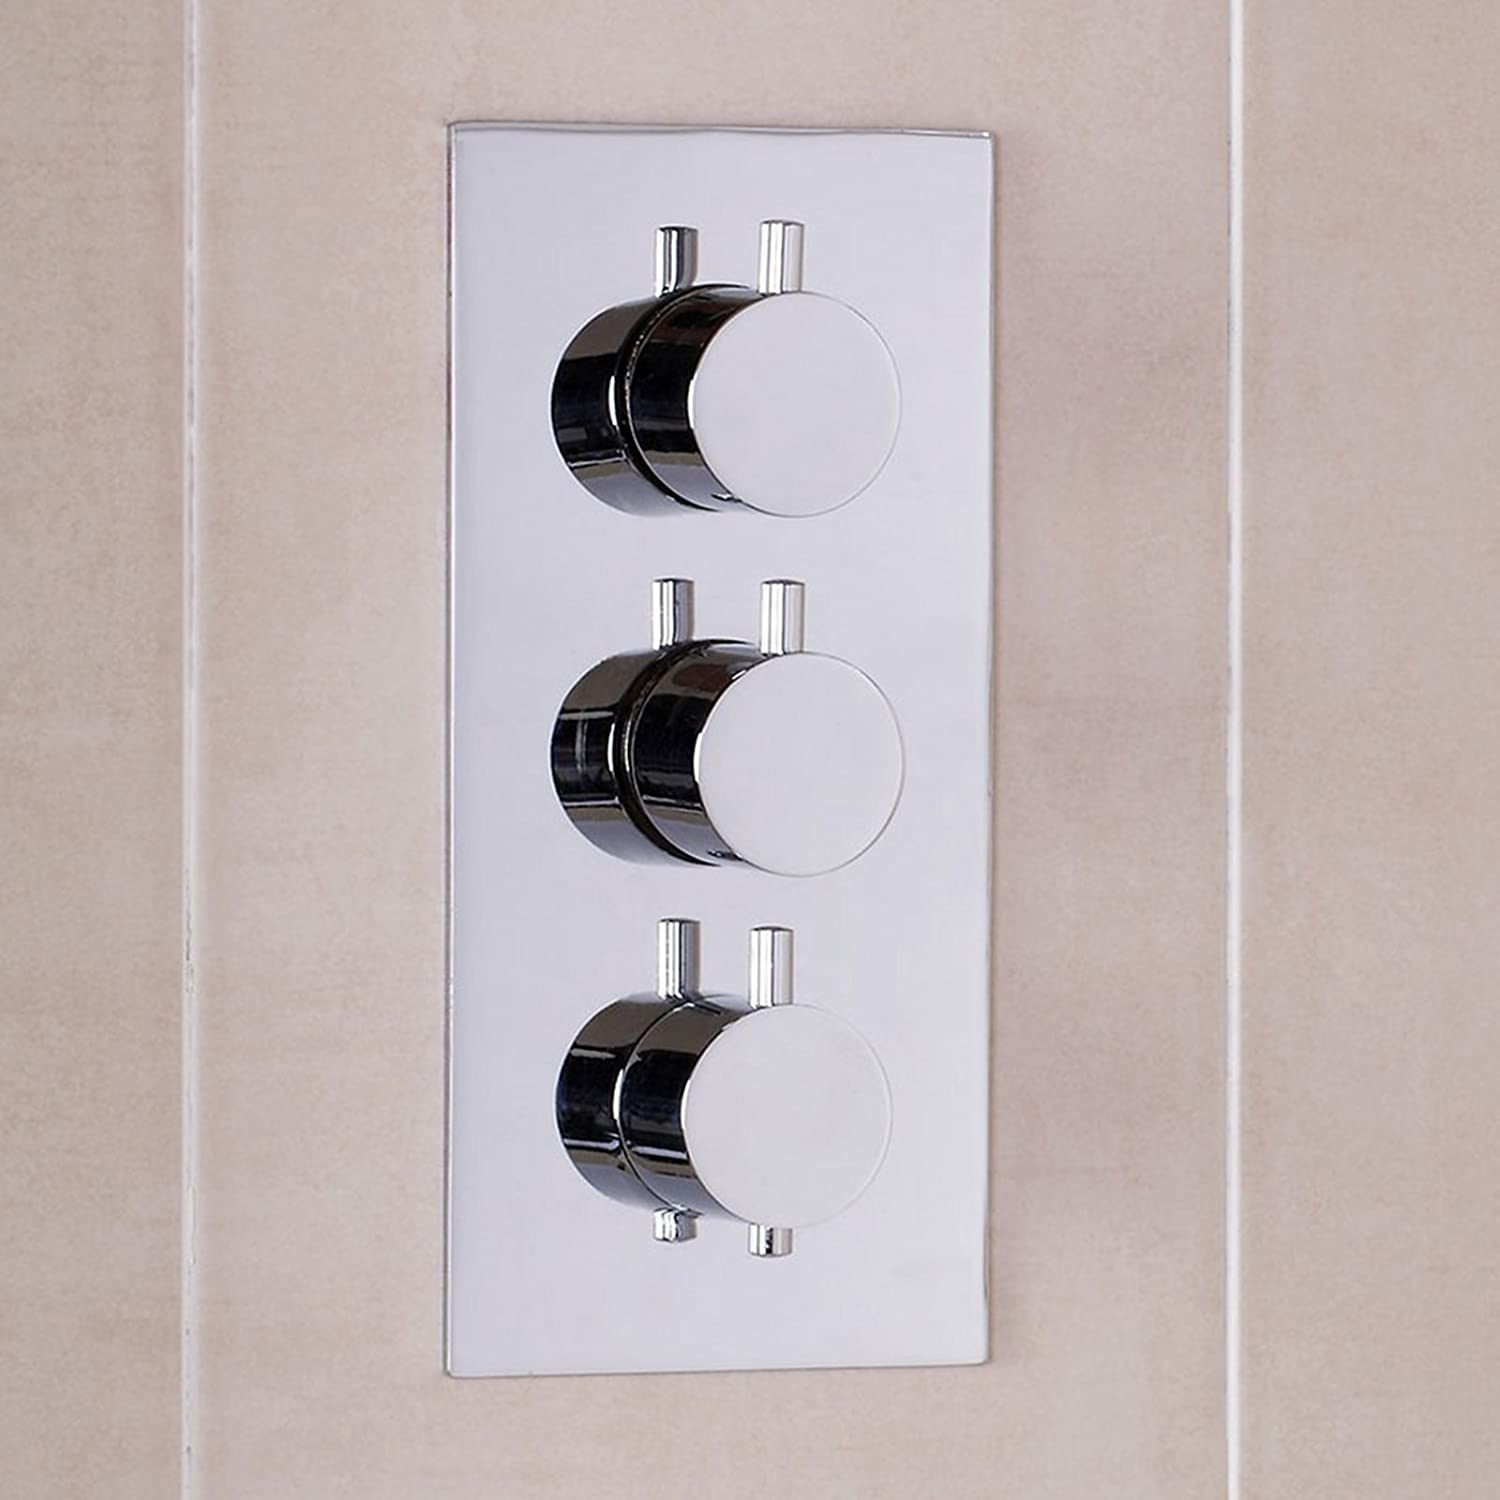 ENKI Concealed Thermostatic Shower Valve Mixer Tap Round 3 Dial 3 Way:  Amazon.co.uk: DIY U0026 Tools